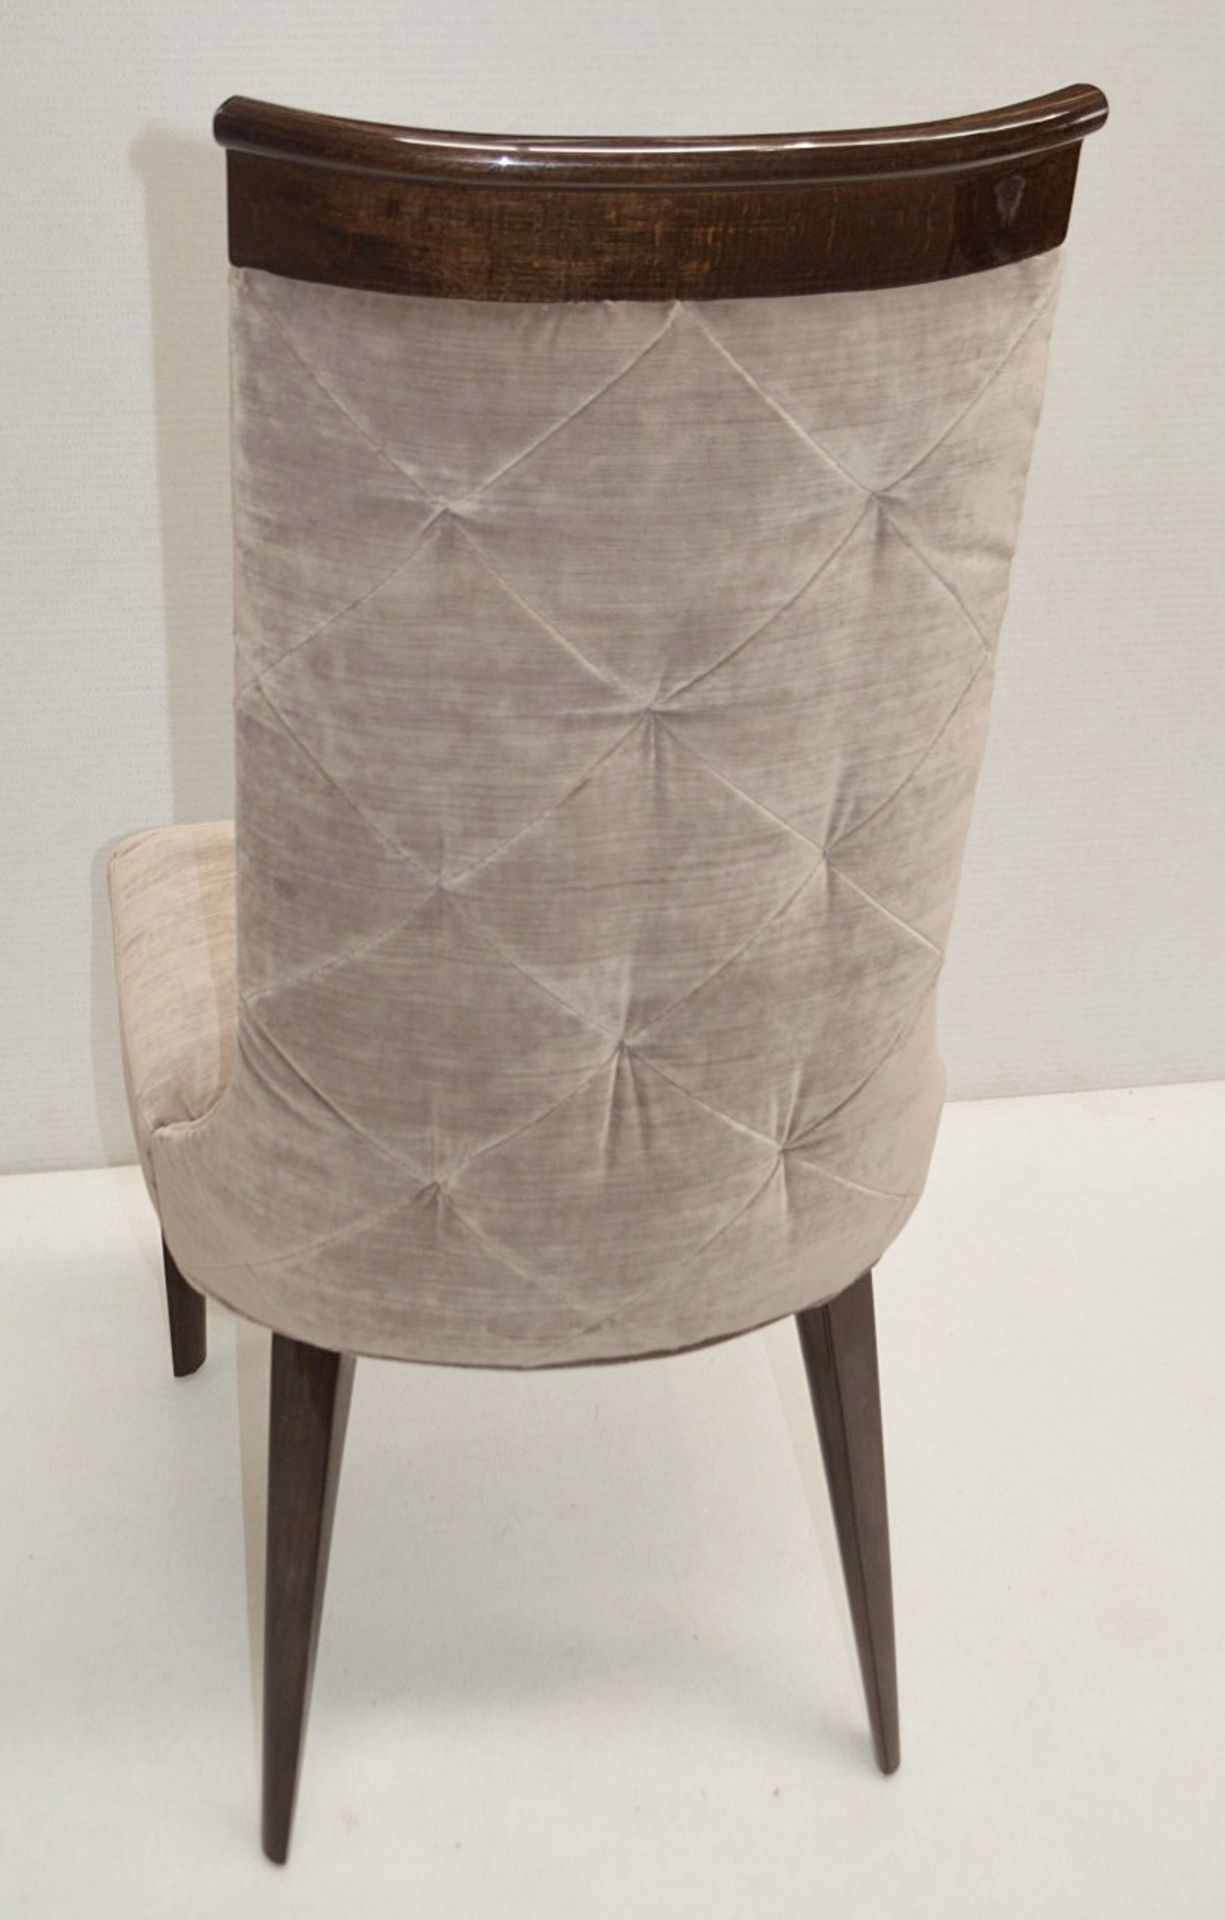 4 x GIORGIO Coliseum Velvet Upholstered Button Back Side Chairs With A Brazilian Rosewood Finish - - Image 3 of 11